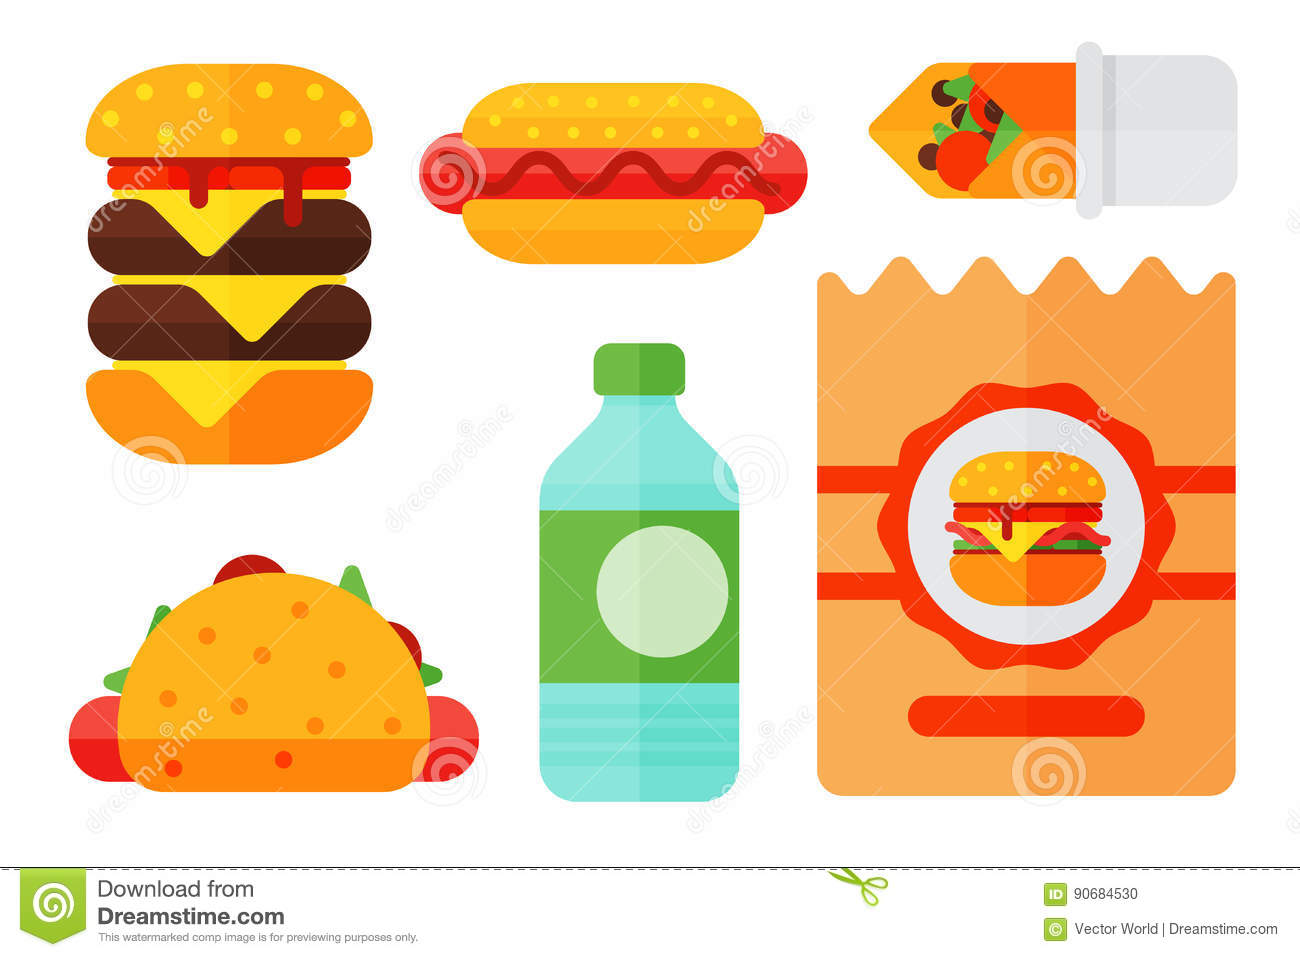 Cartoon restaurant free vector graphic download - Royalty Free Vector Set Of Colorful Cartoon Fast Food Icons Restaurant Tasty American Cheeseburger Meat And Unhealthy Burger Meal